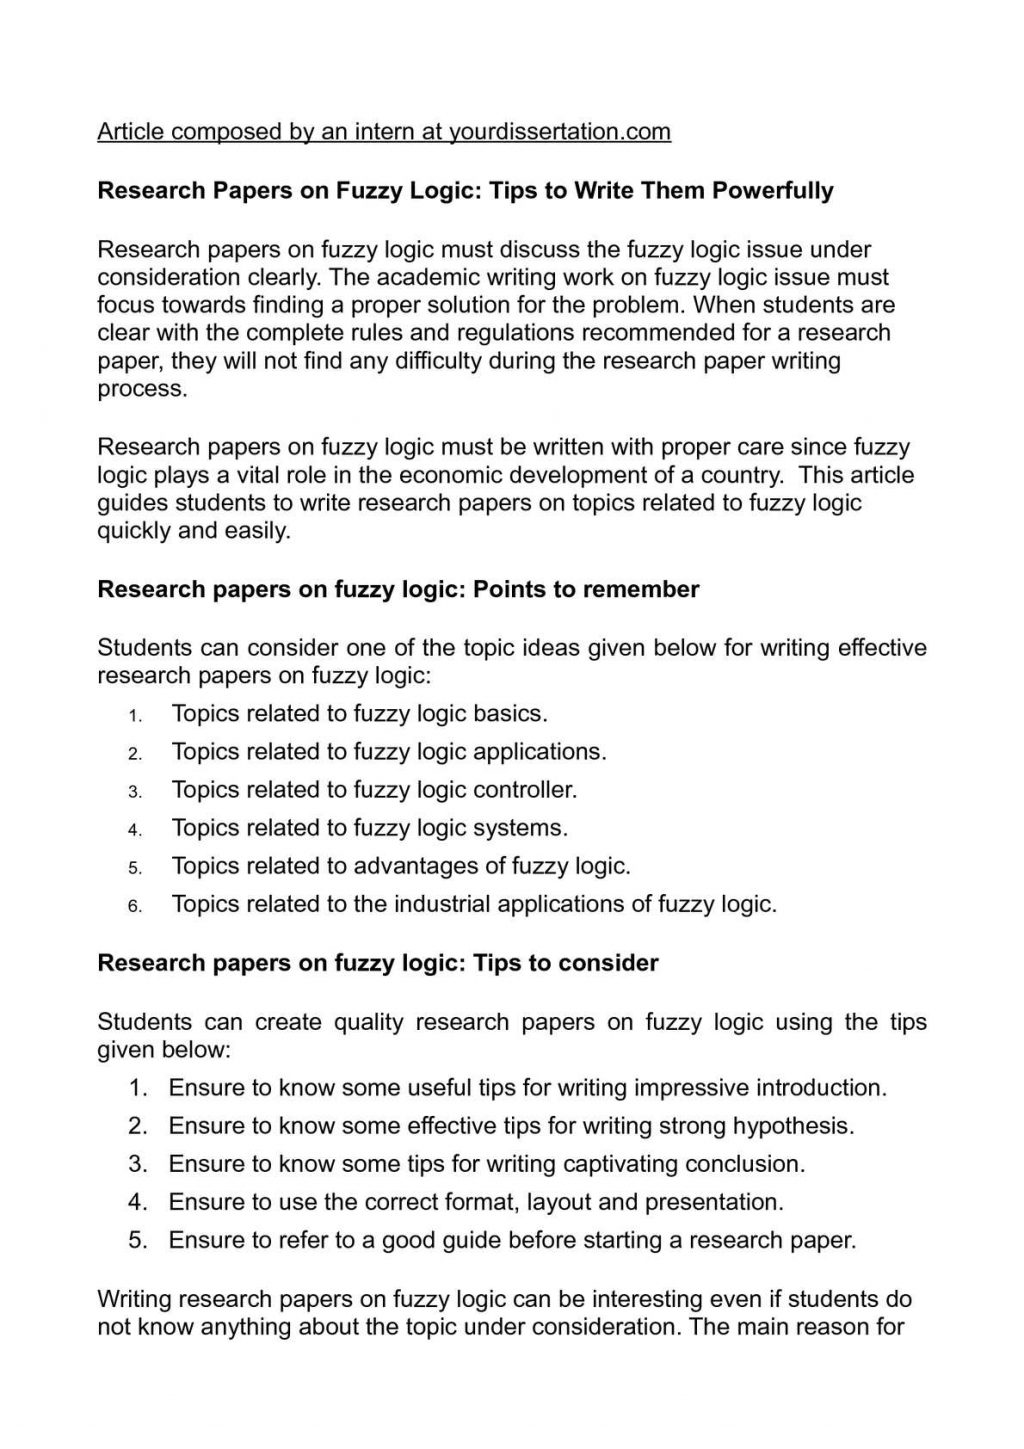 026 20research Paper Samples Fun Topics To Write On Psychology Economics20 1024x1449 About For Wonderful A Research History Controversial Full